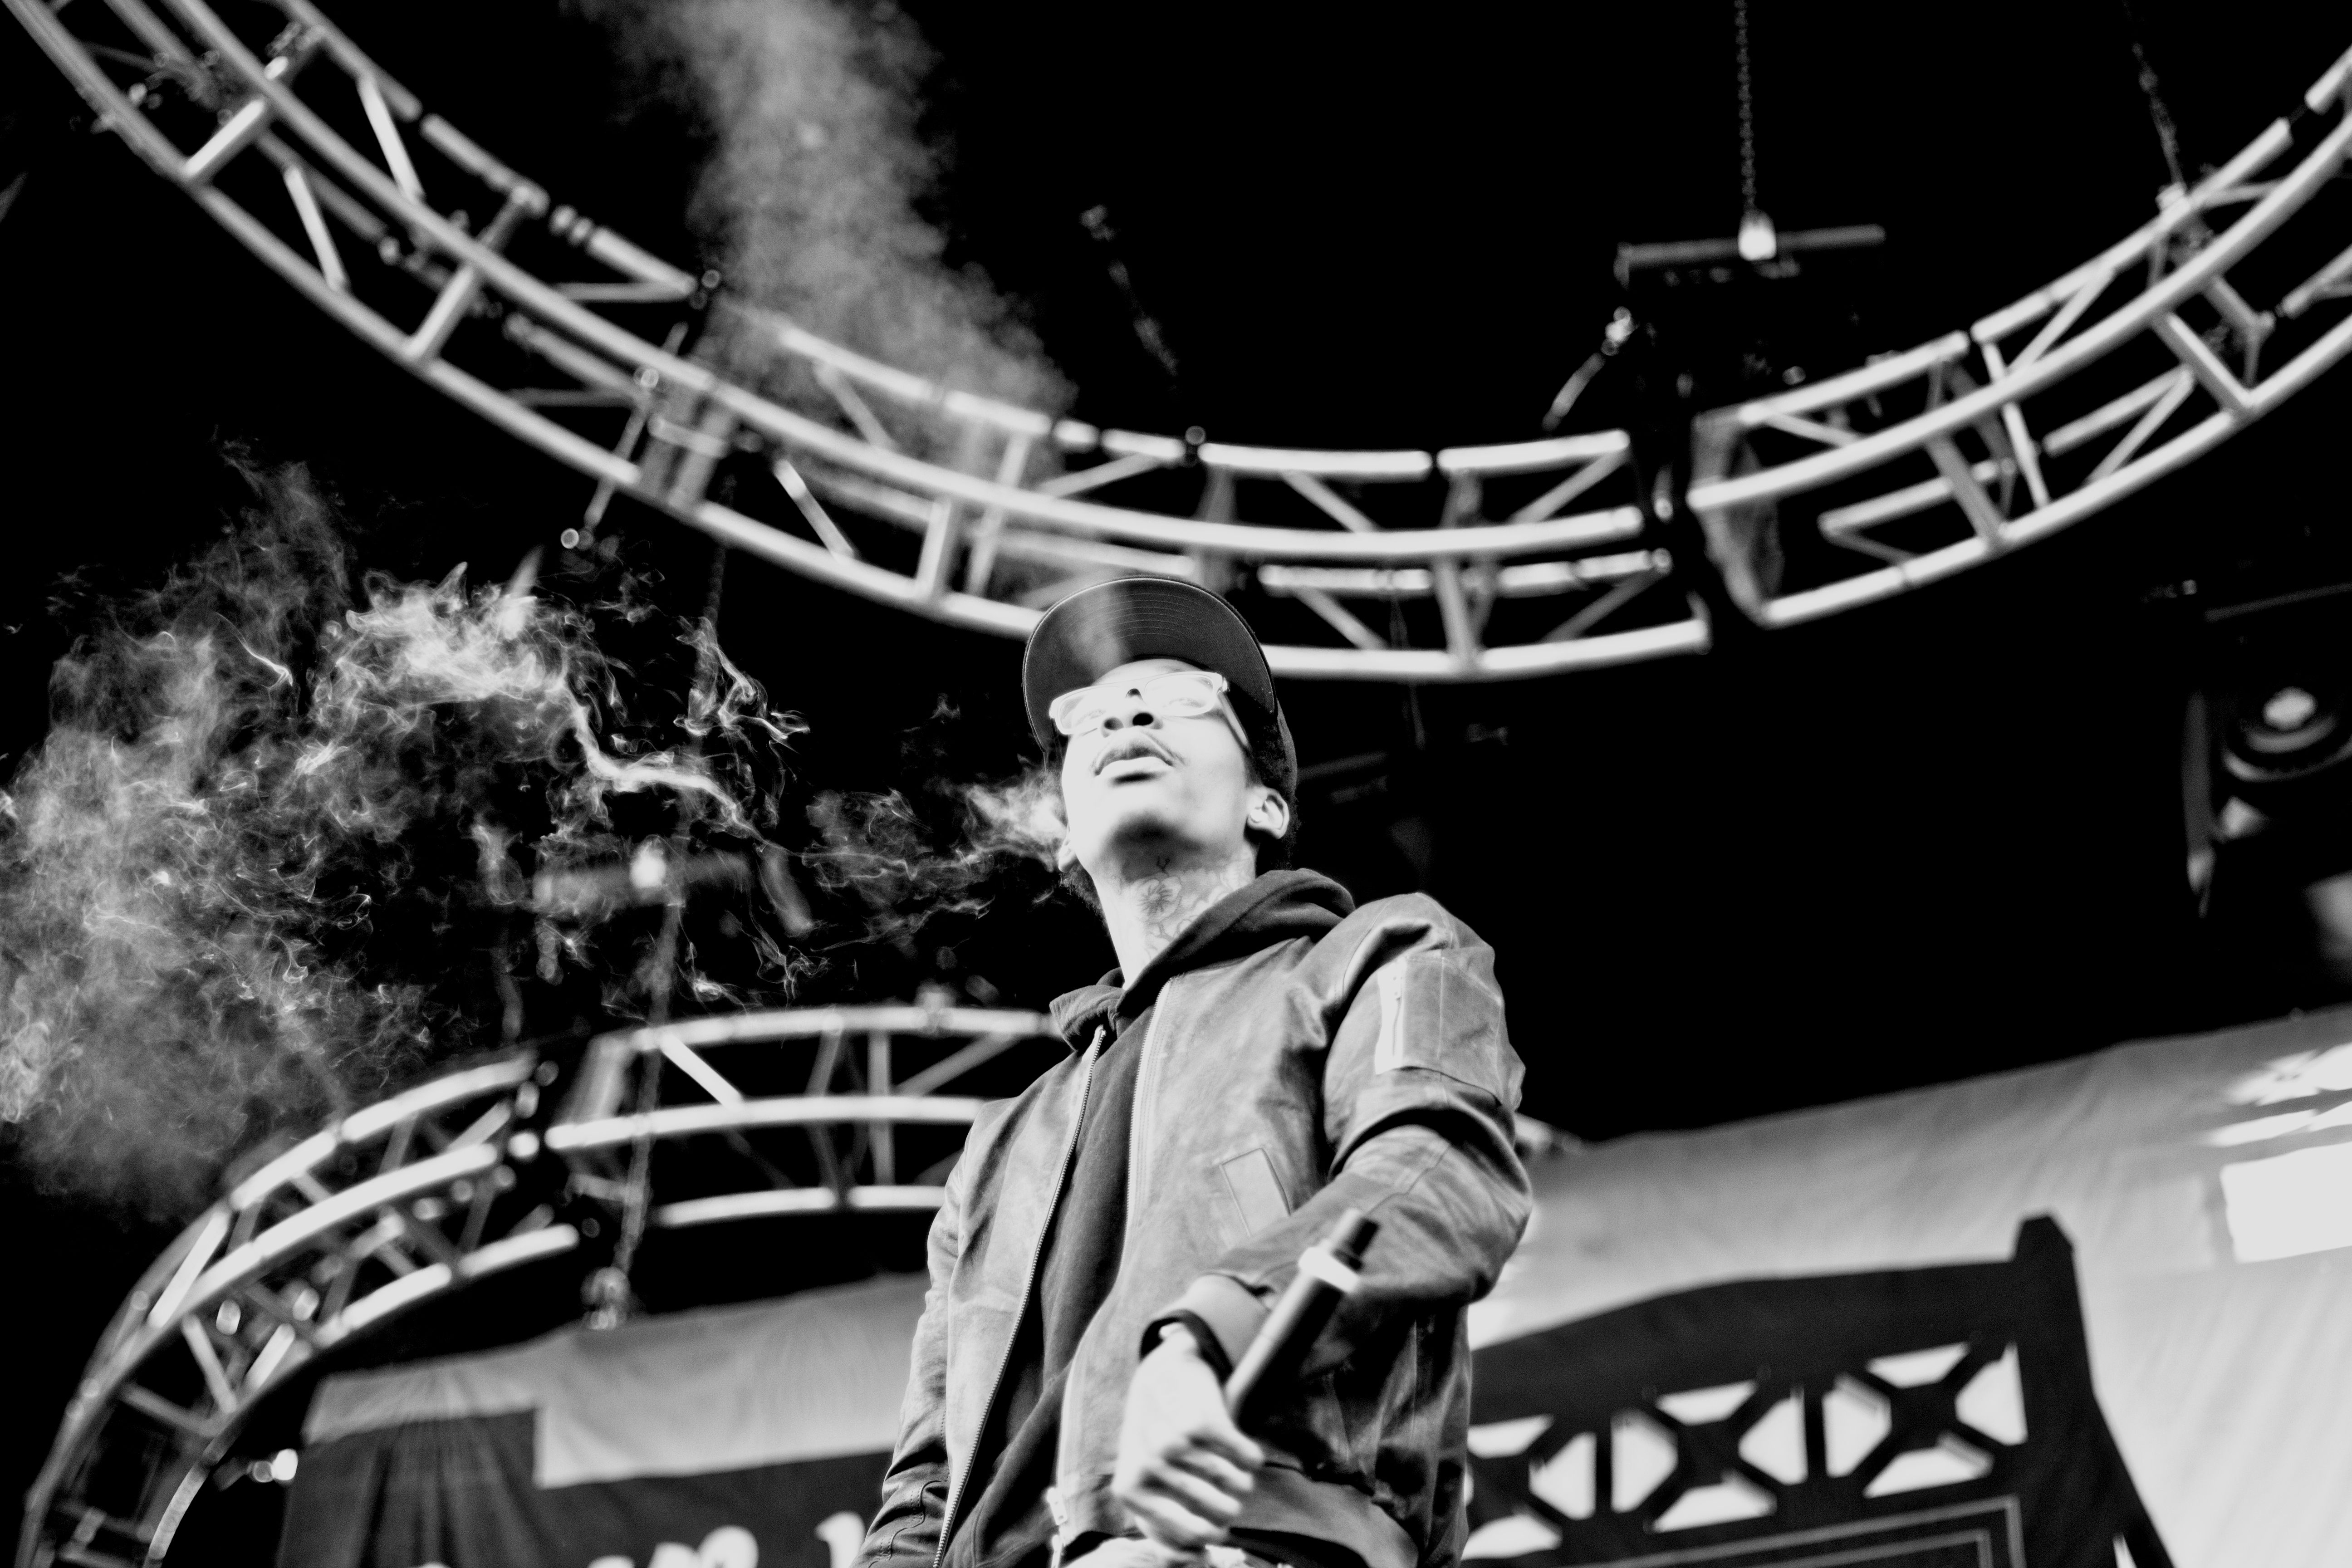 wiz khalifa at the 2011 summercamp music festival. taken by yours truly.